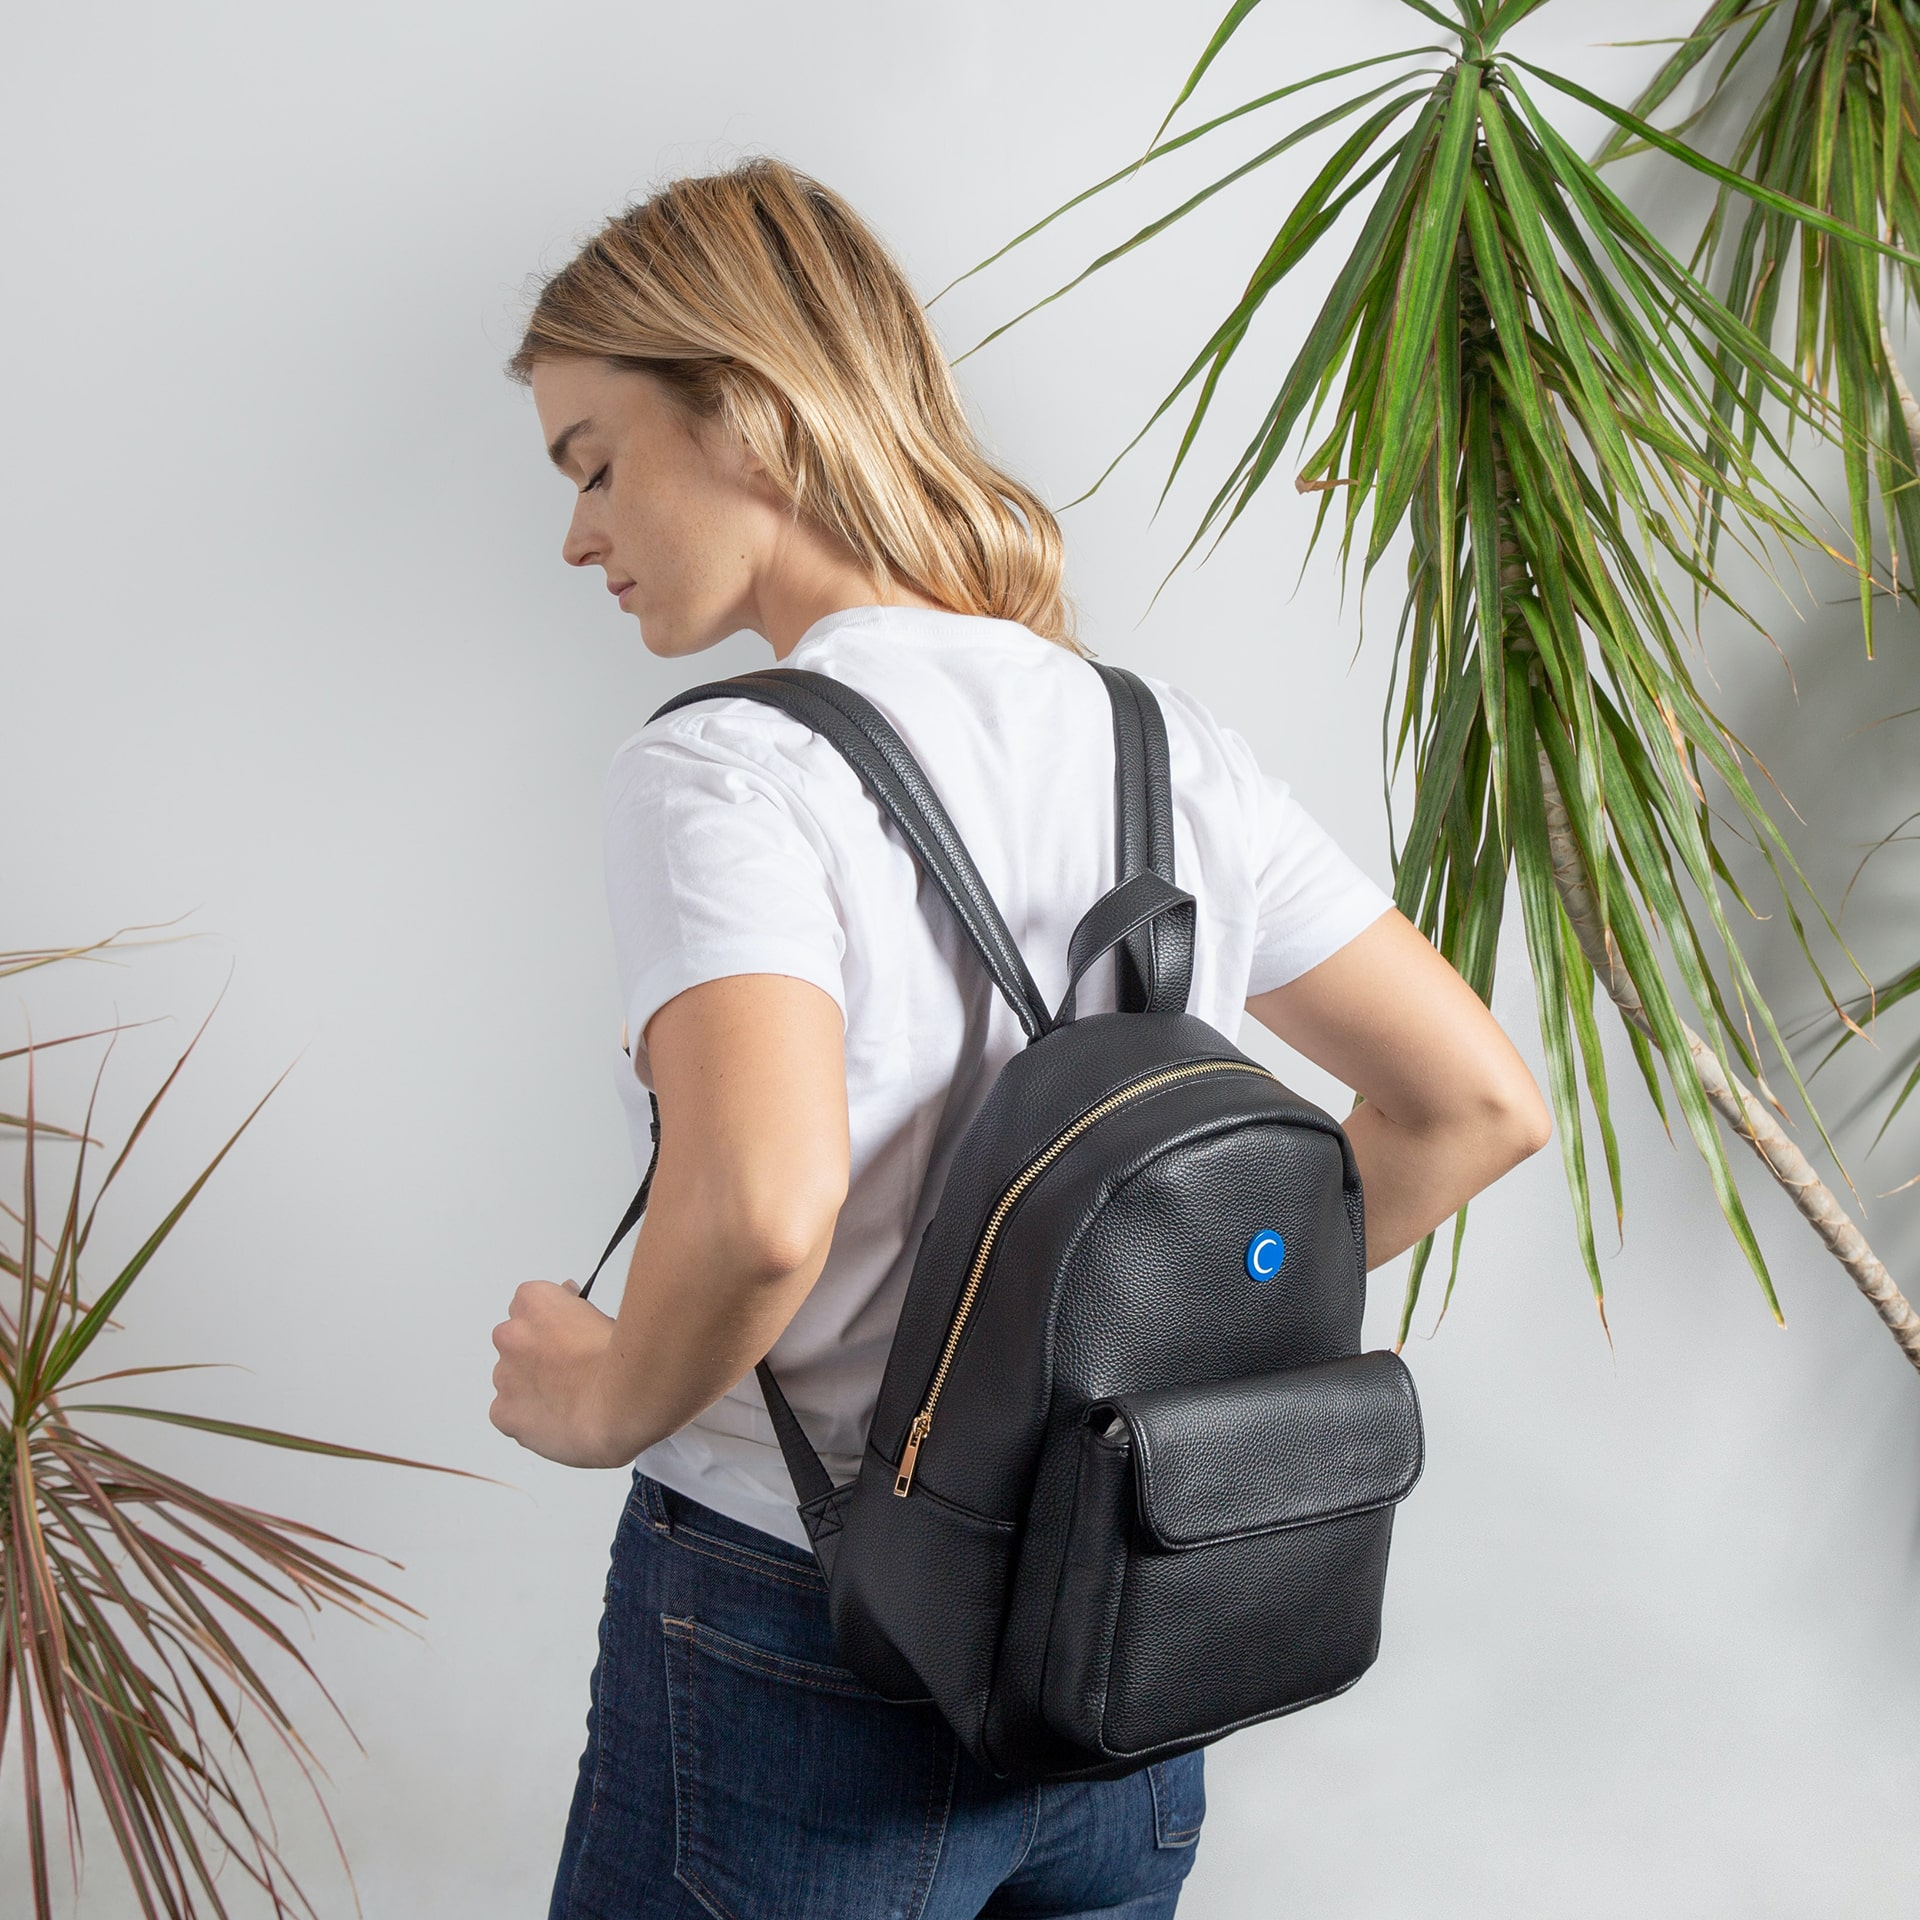 Photo of a woman putting on a backpack